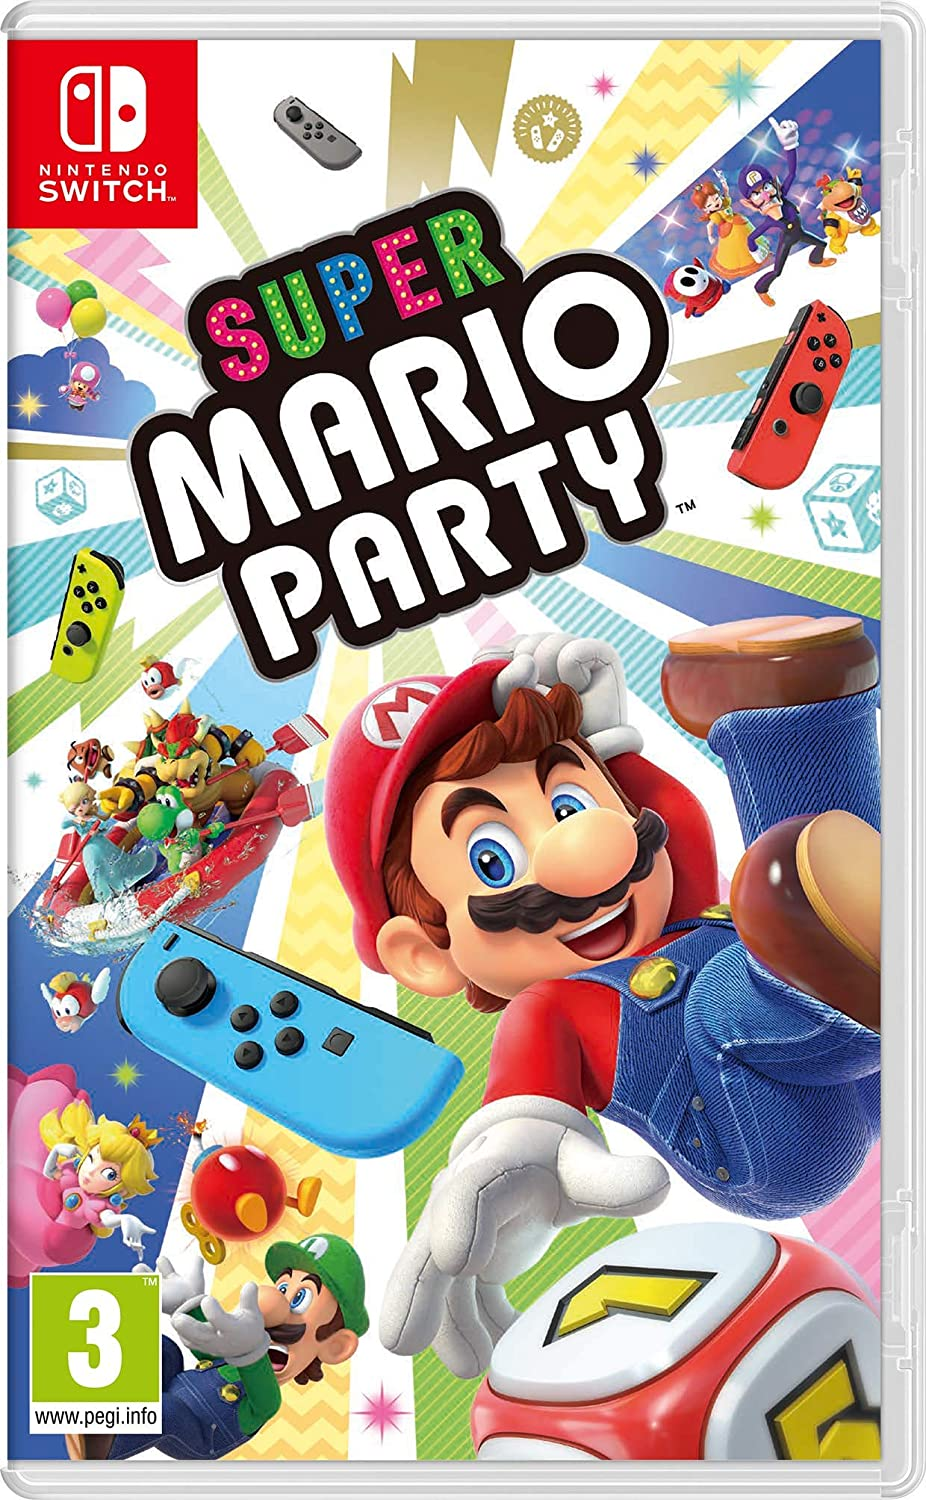 SUPER MARIO PARTY - Nintendo Switch [Importación italiana]: Amazon.es: Videojuegos